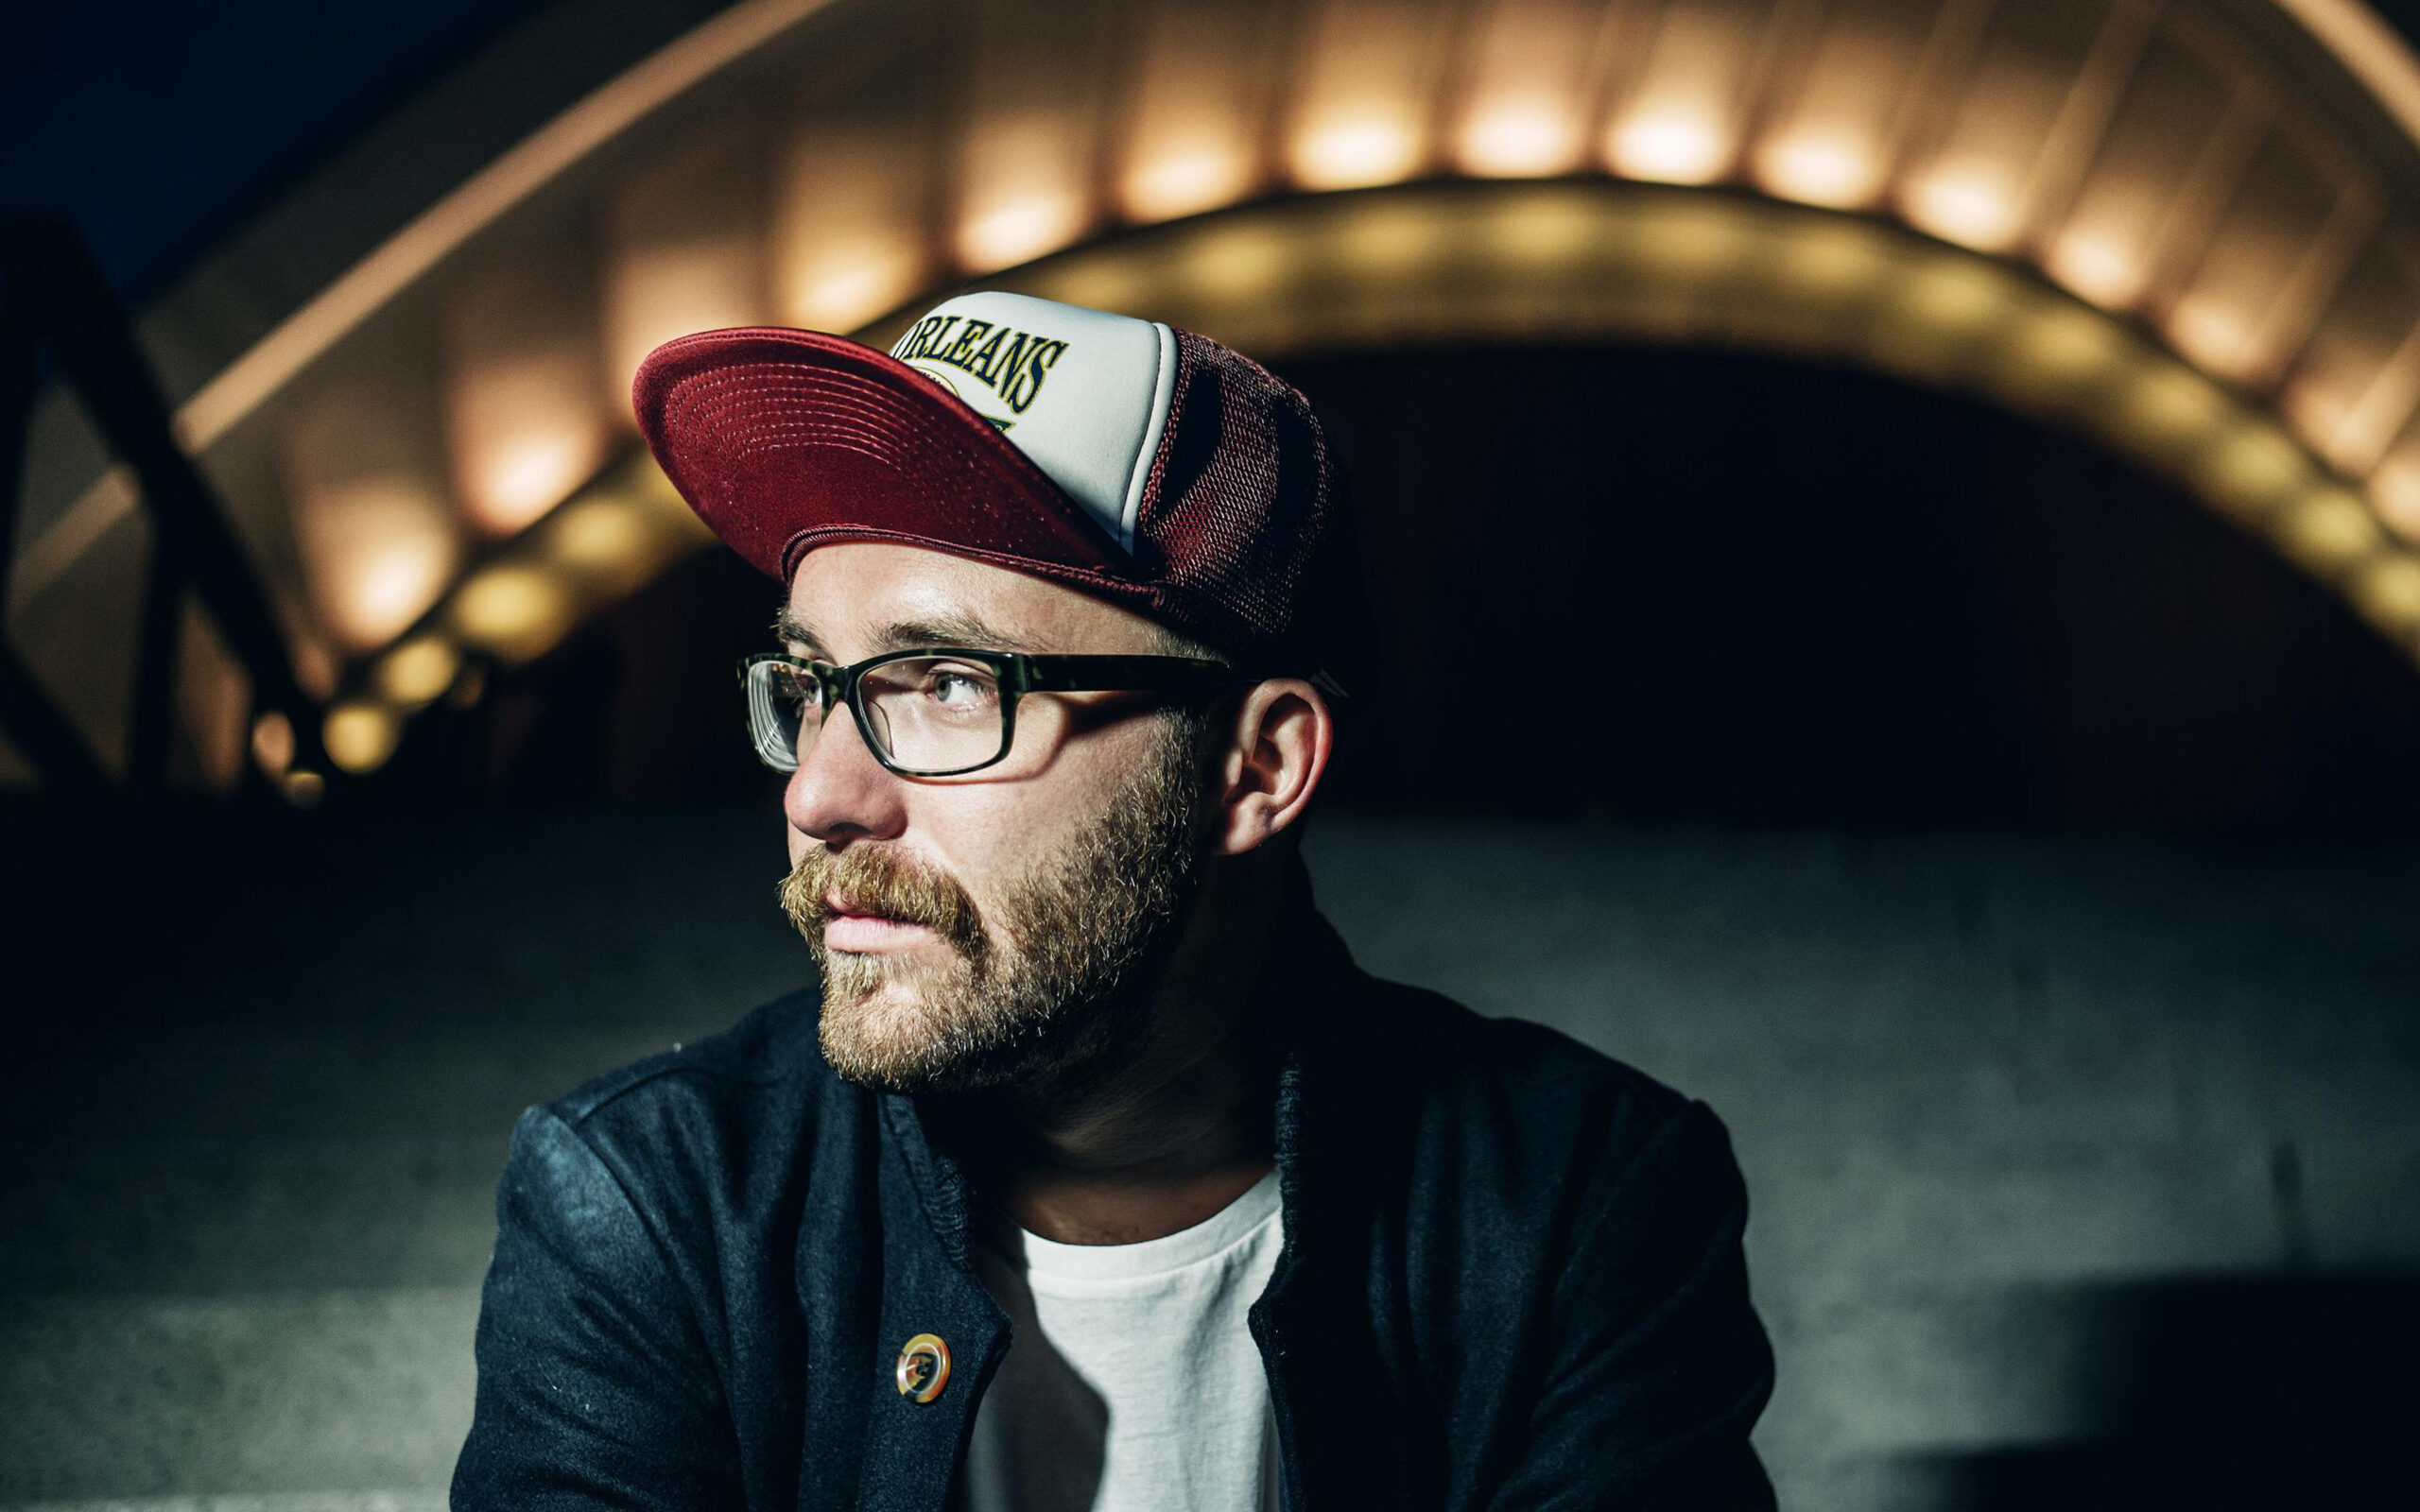 Mark Forster Phone number, Email Id, Fanmail, Instagram, Tiktok, and Contact Details